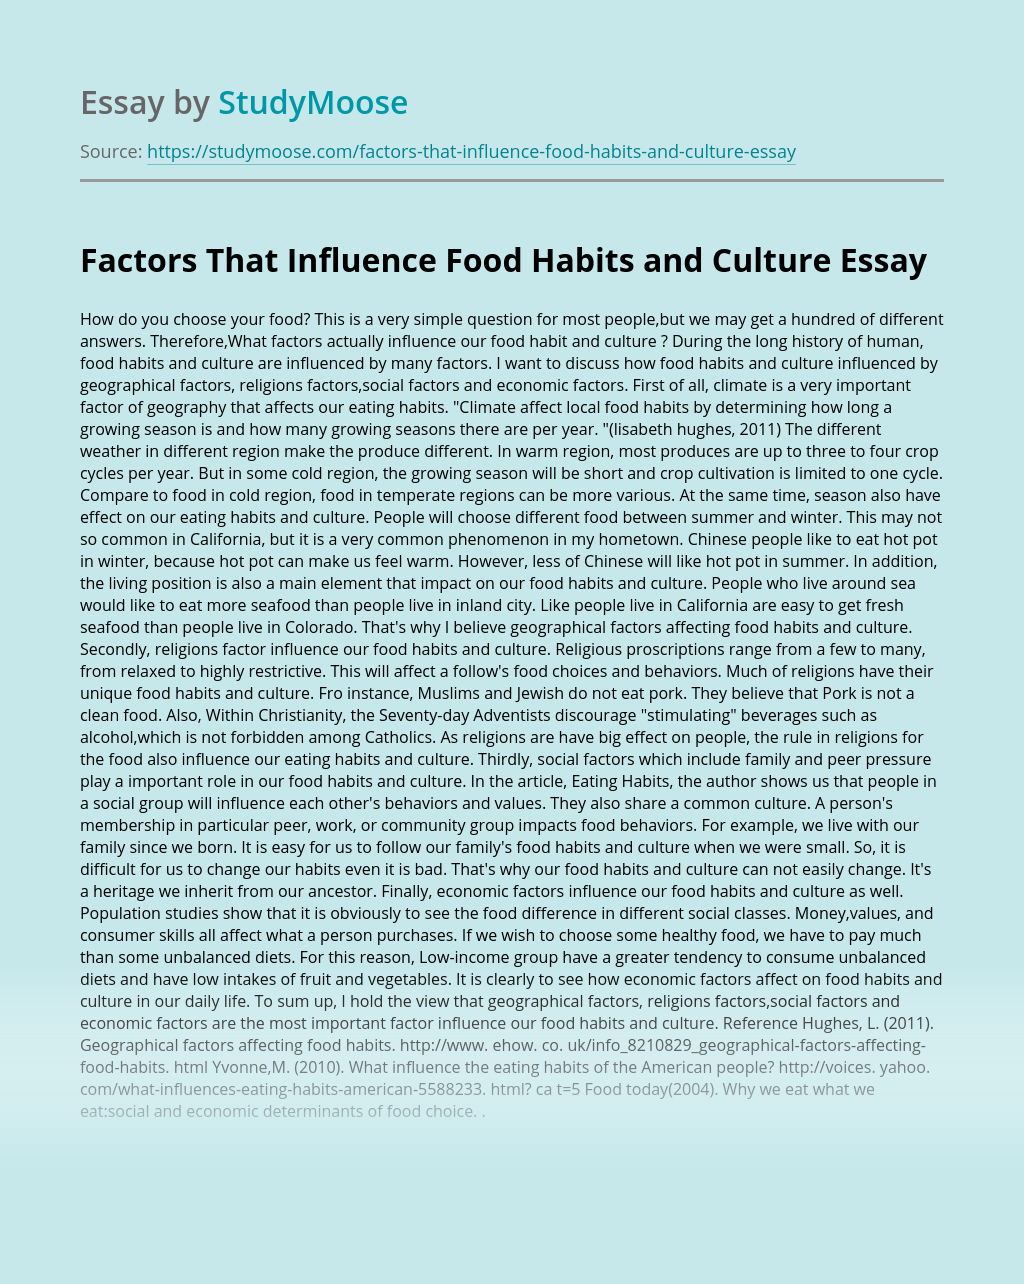 Factors That Influence Food Habits and Culture